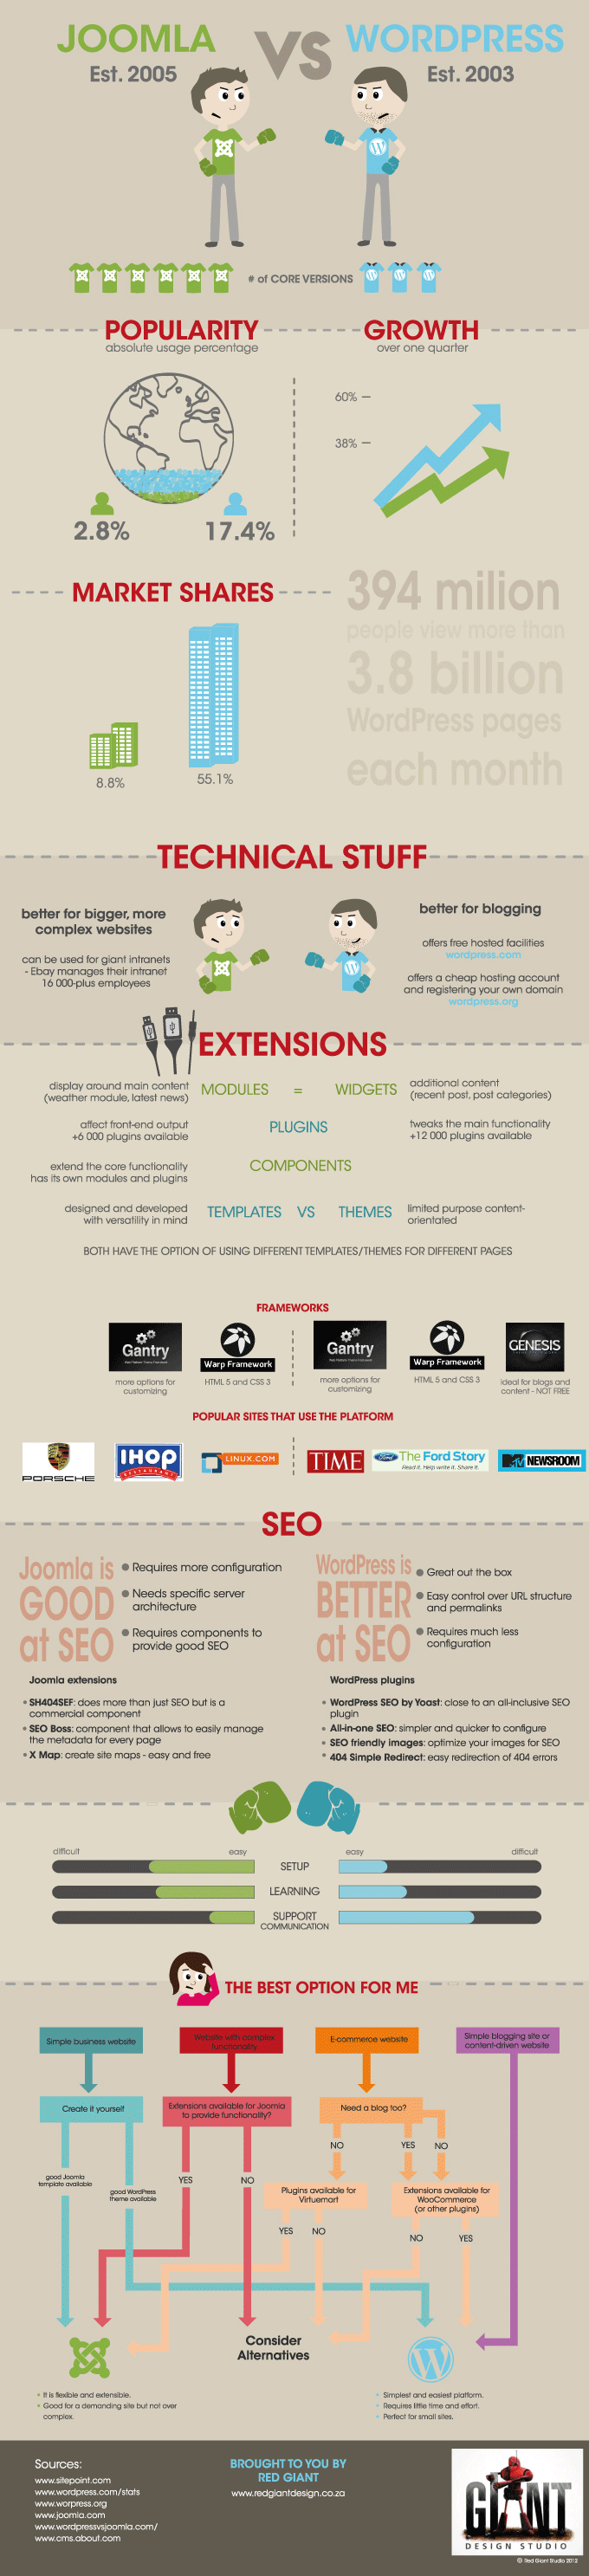 WordPress vs Joomla - which is the best Content Management System (CMS)